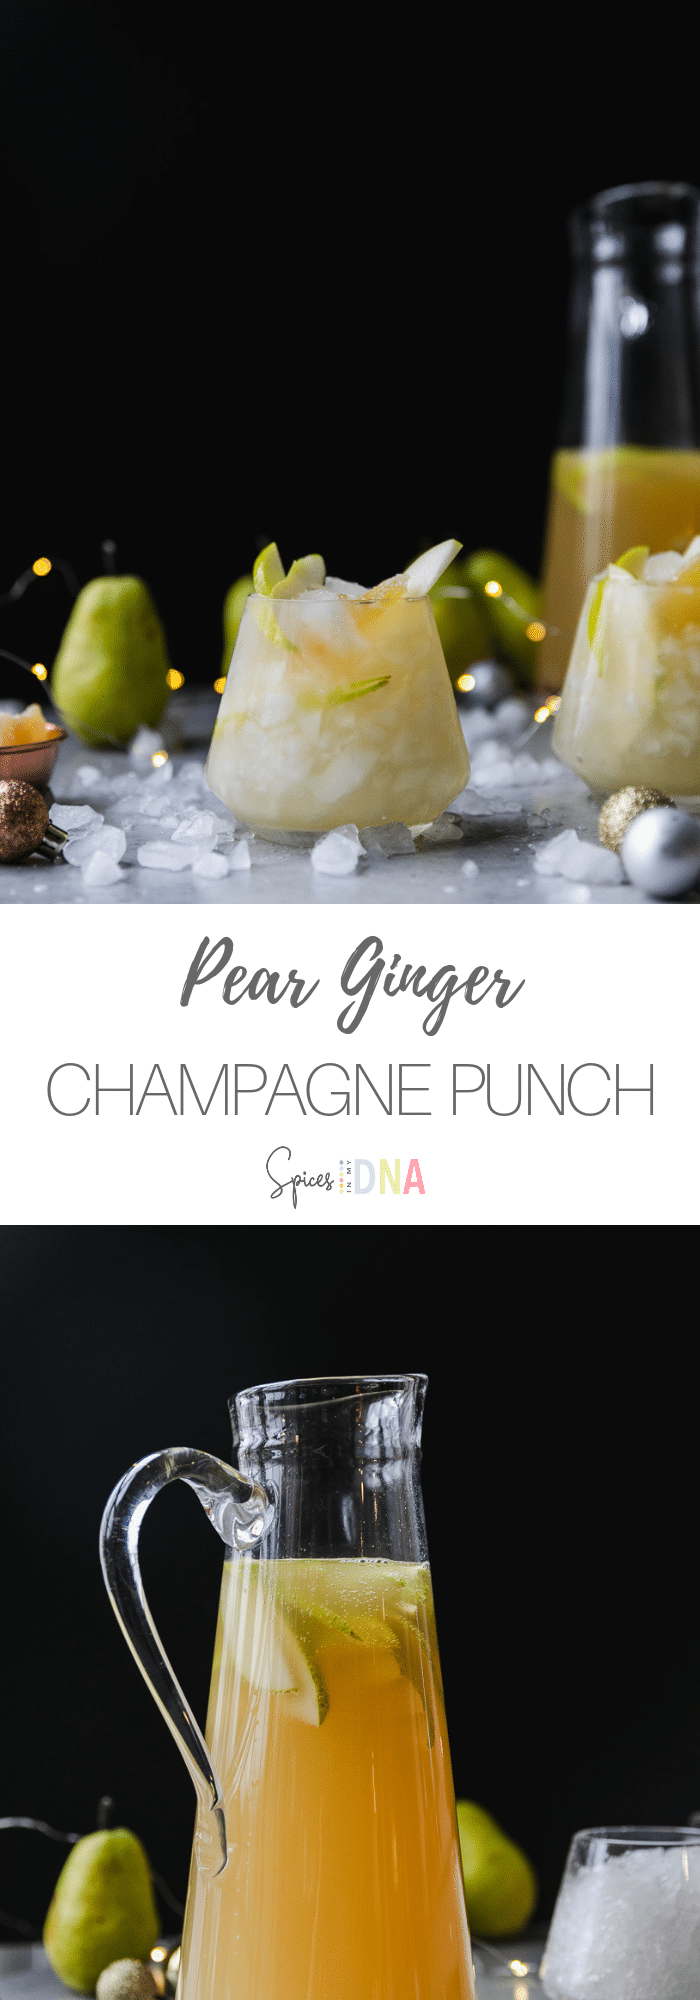 This Pear Ginger Champagne Punch is a super festive, 4 ingredient cocktail to make for New Years Eve! It's filled with champagne, pear juice, ginger brandy, and ginger beer! I love to add fresh pear slices and then garnish it with a piece of crystallized ginger! #cocktail #champagne #gingerbeer #newyears #punch #pear #ginger